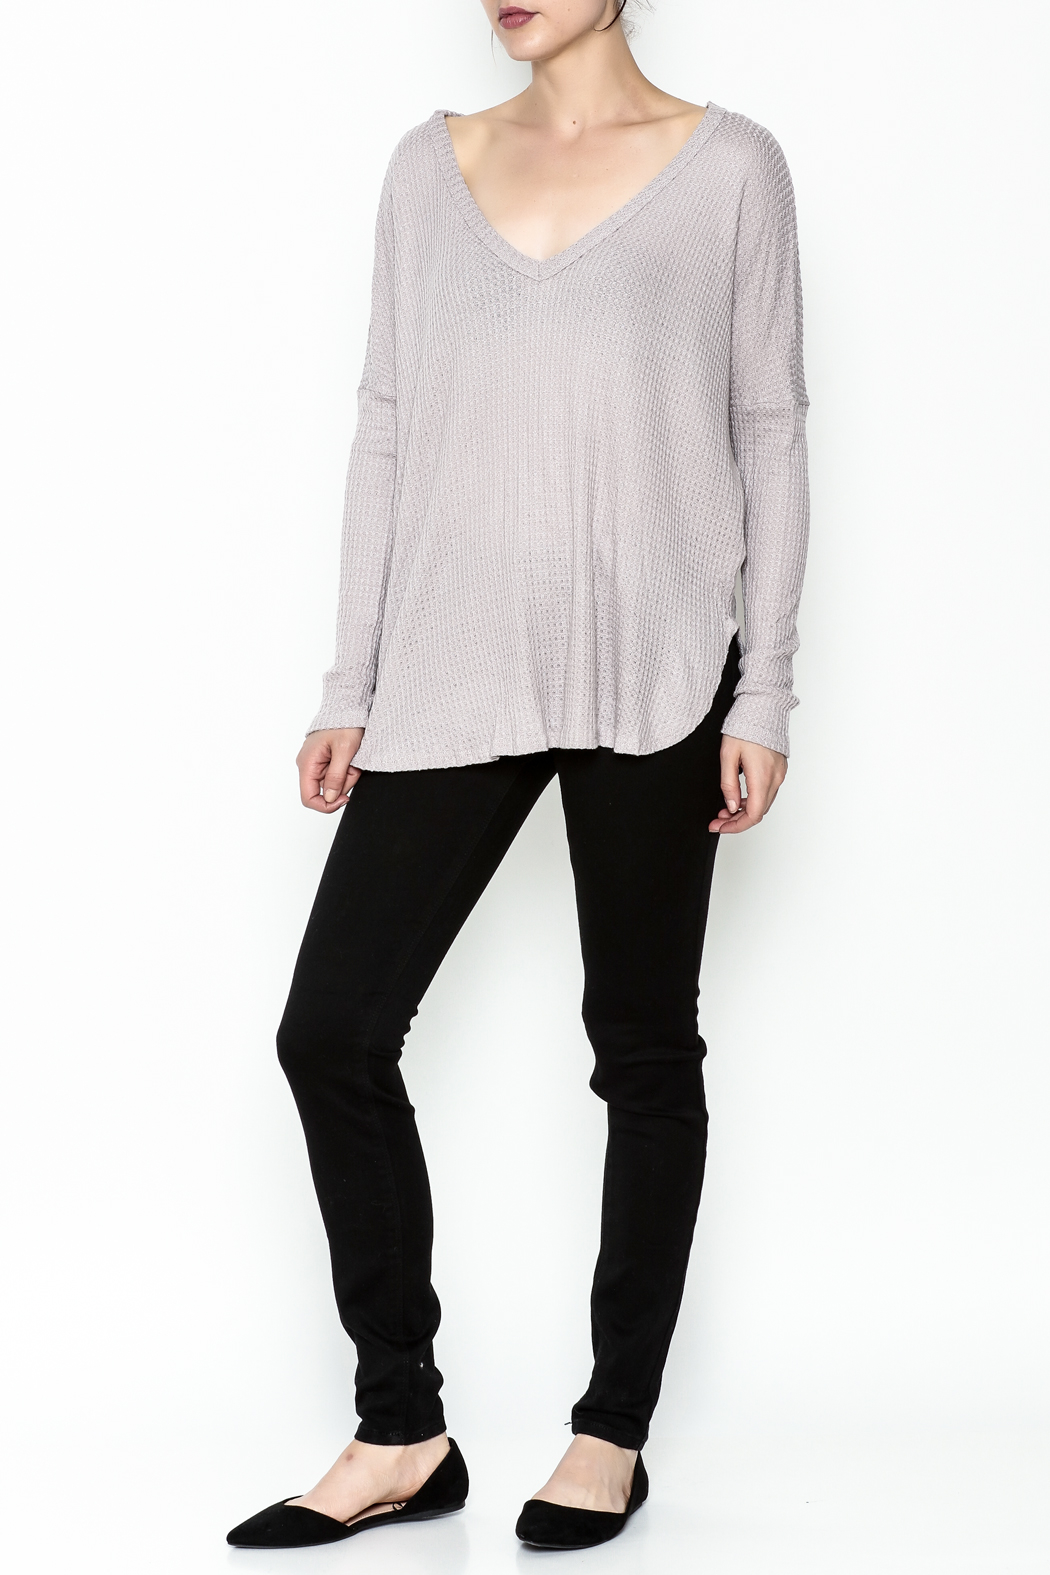 Polly & Esther Lilac Sweater - Side Cropped Image